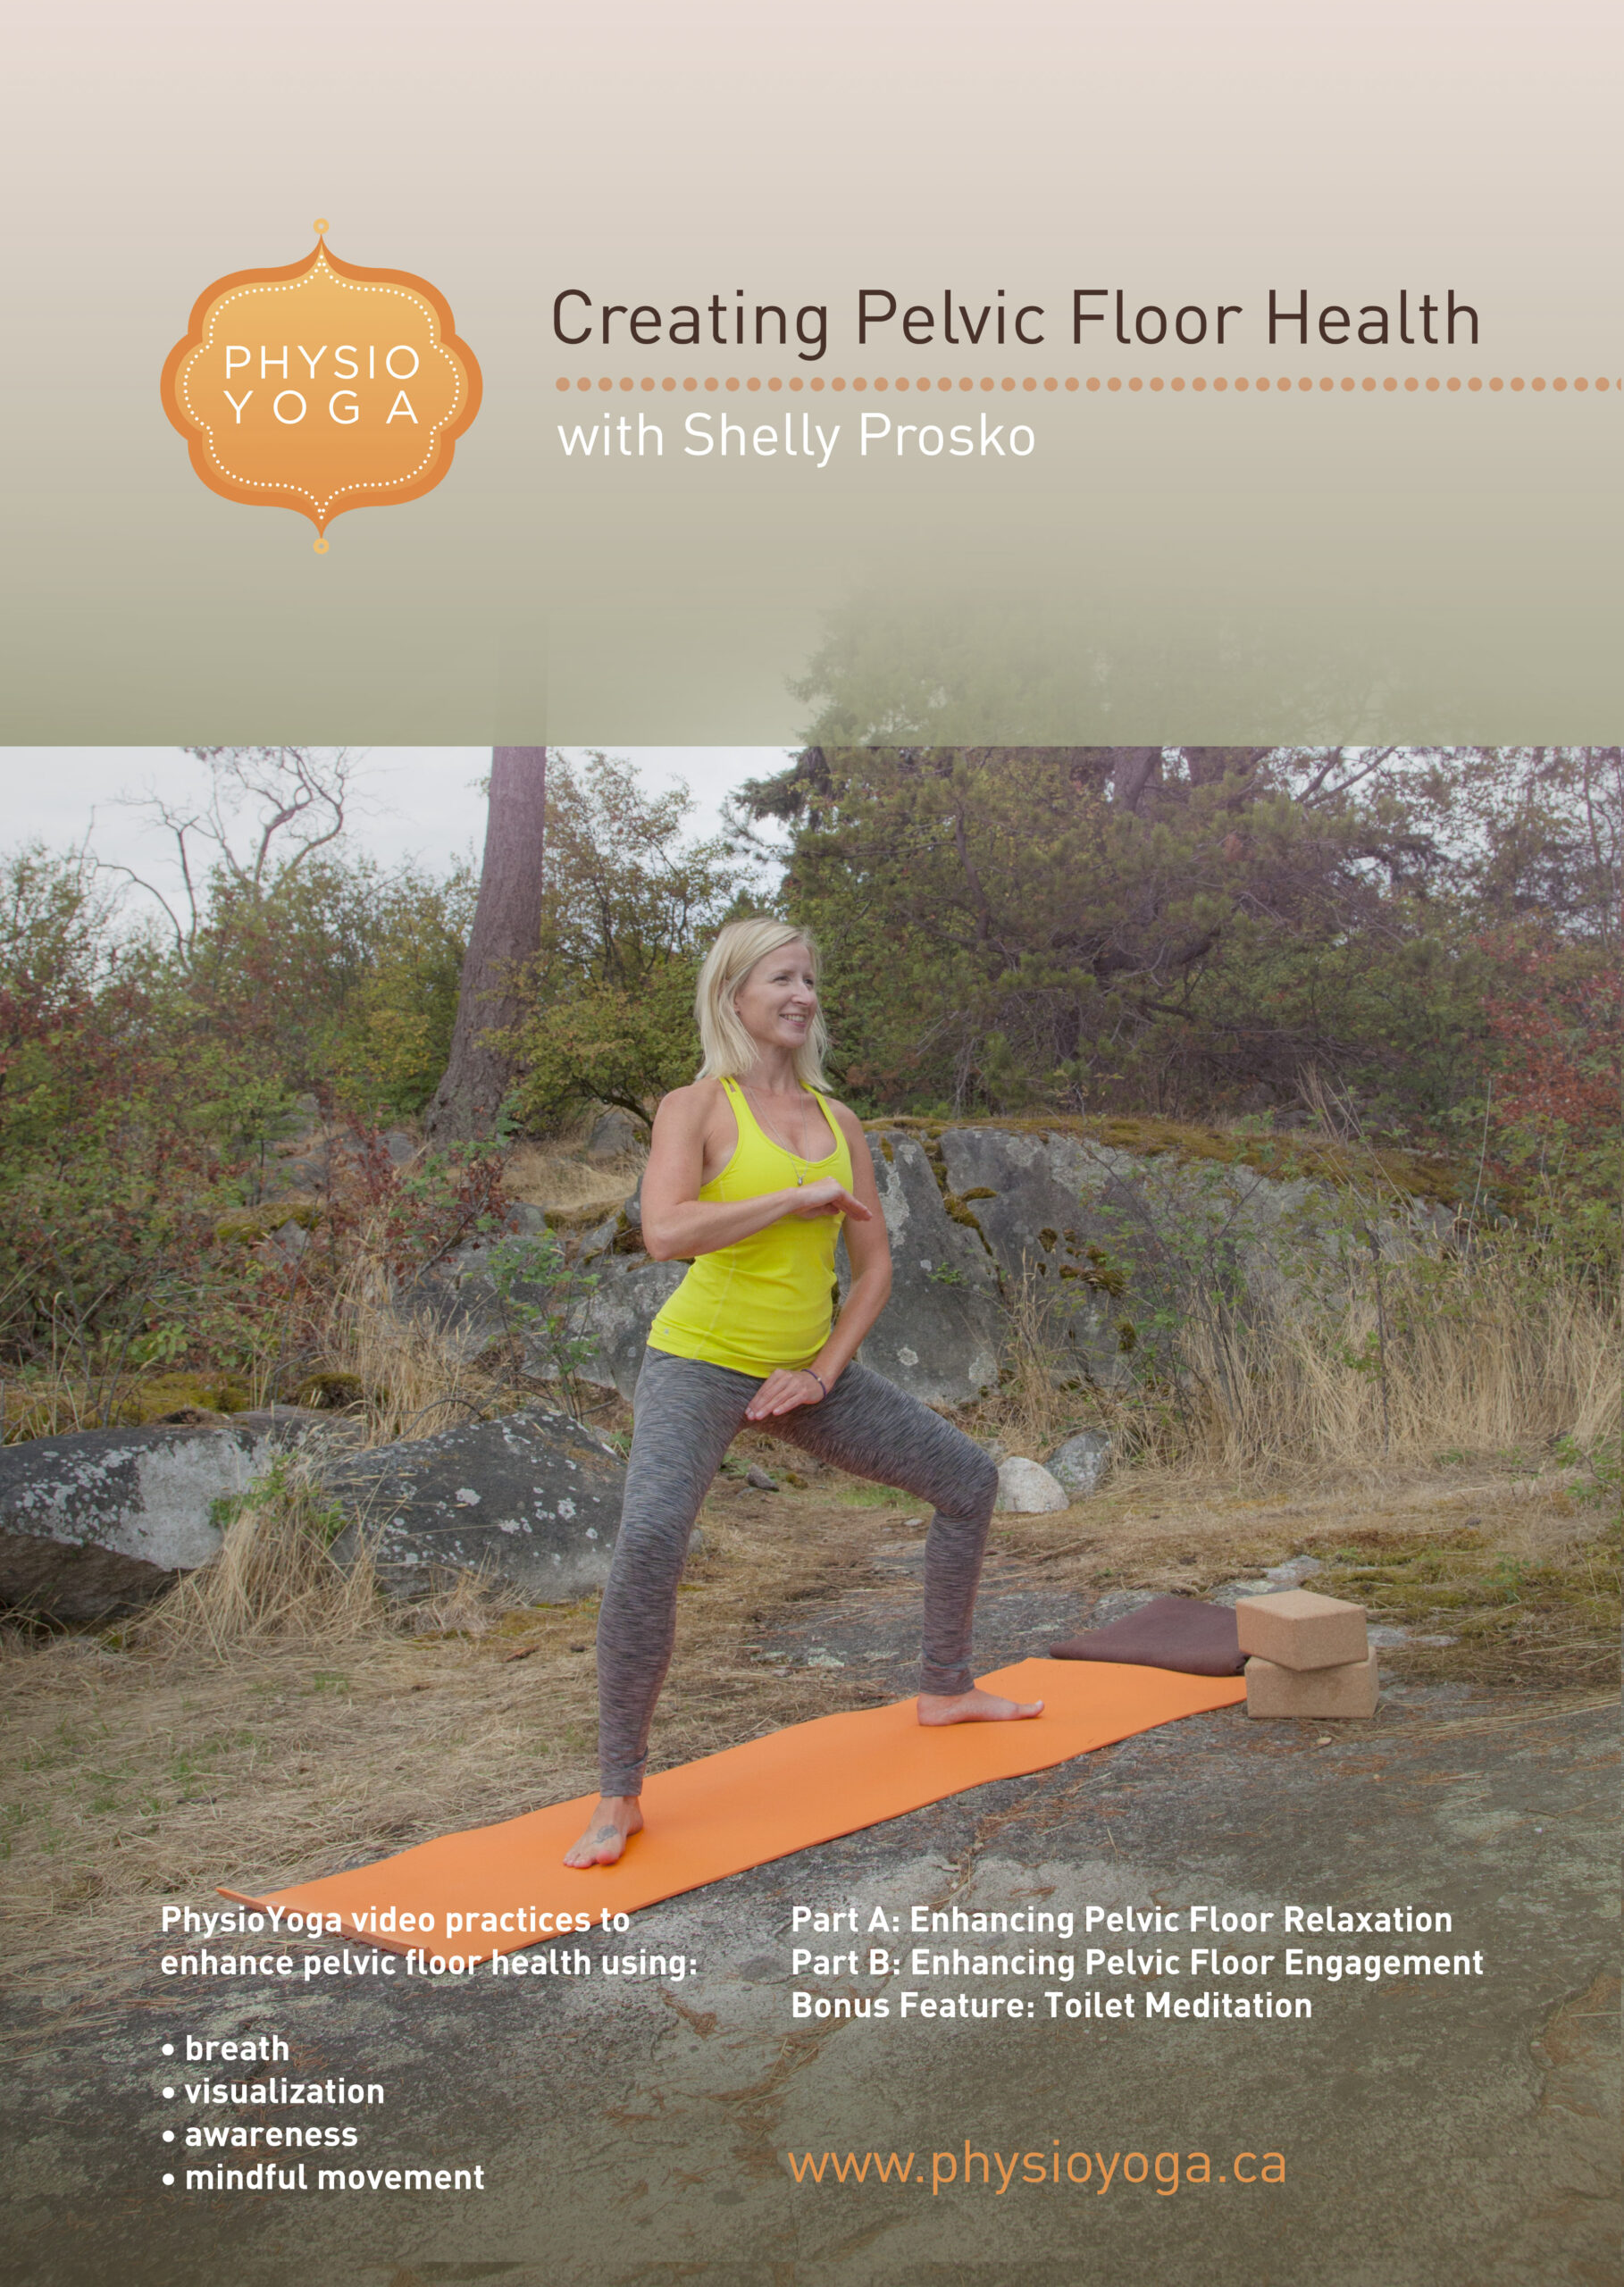 Creating Pelvic Floor Health Yoga Practices